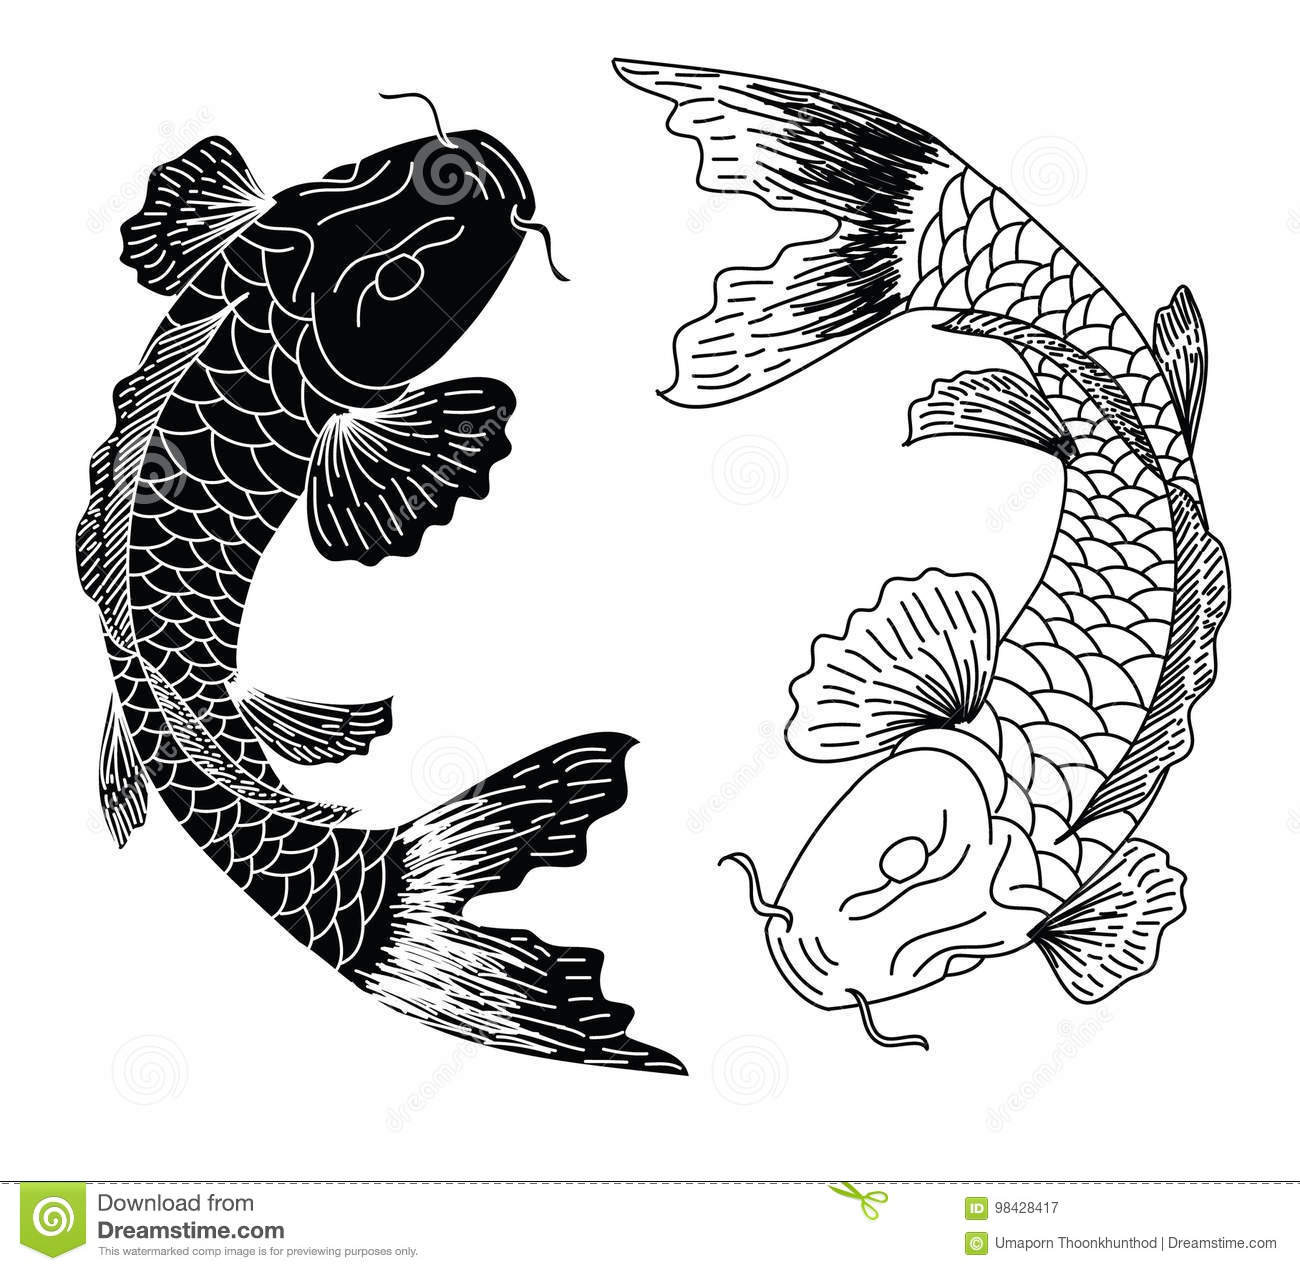 Japanese Koifish Tattoo Design Vector Stock Vector Illustration Of